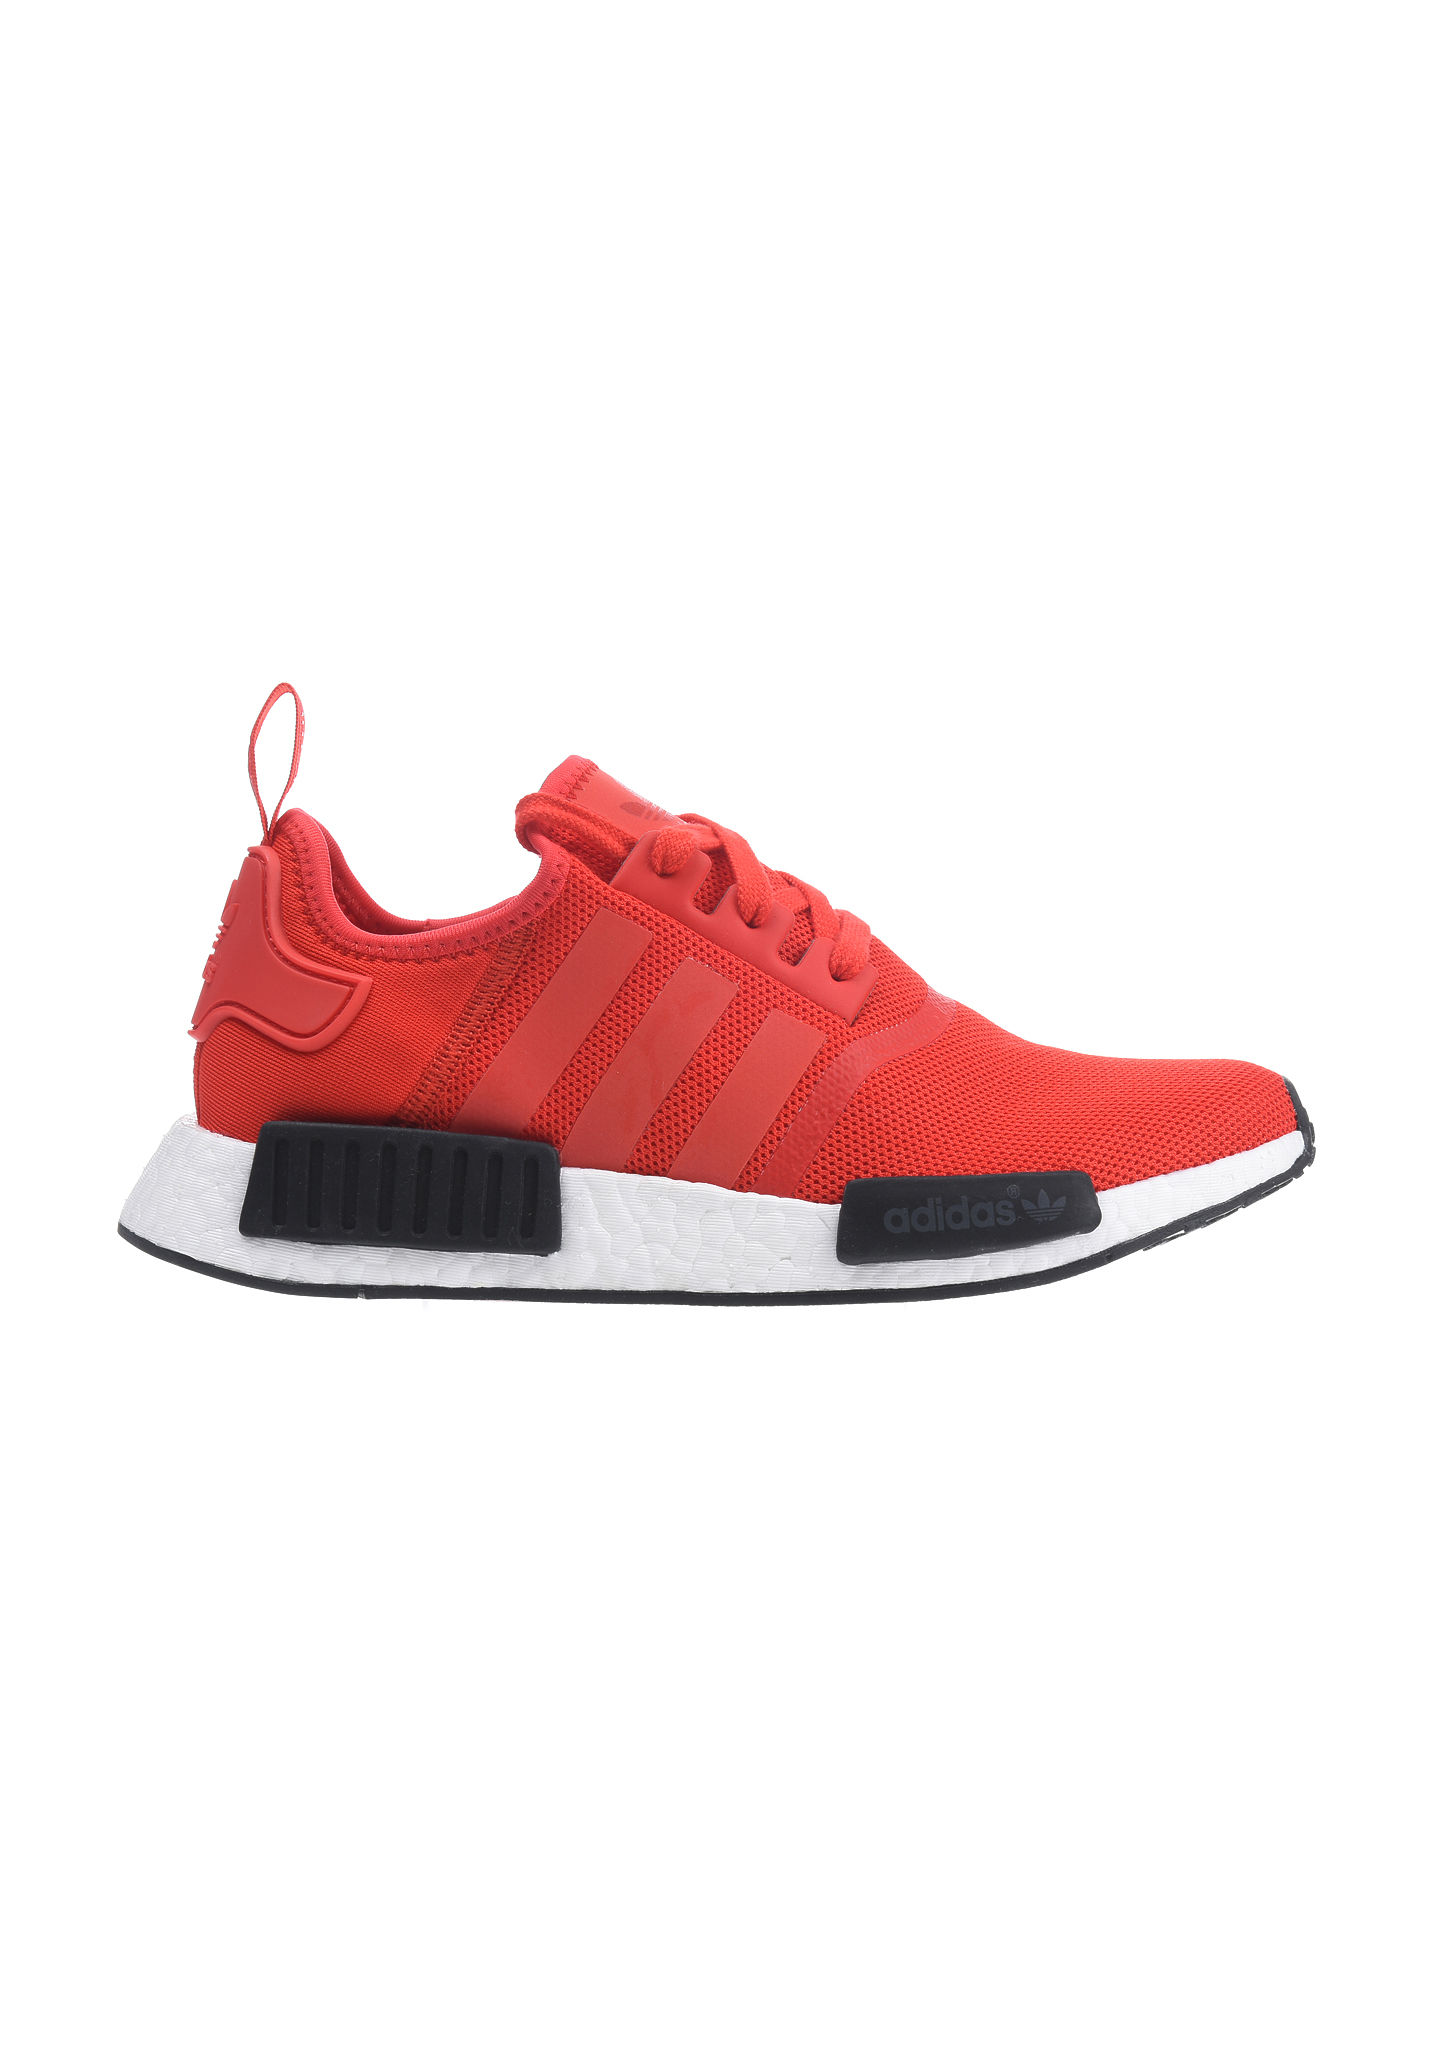 29d385d751f29 ... reduced adidas nmd r1 zapatillas para hombres rojo planet sports eaf83  395e5